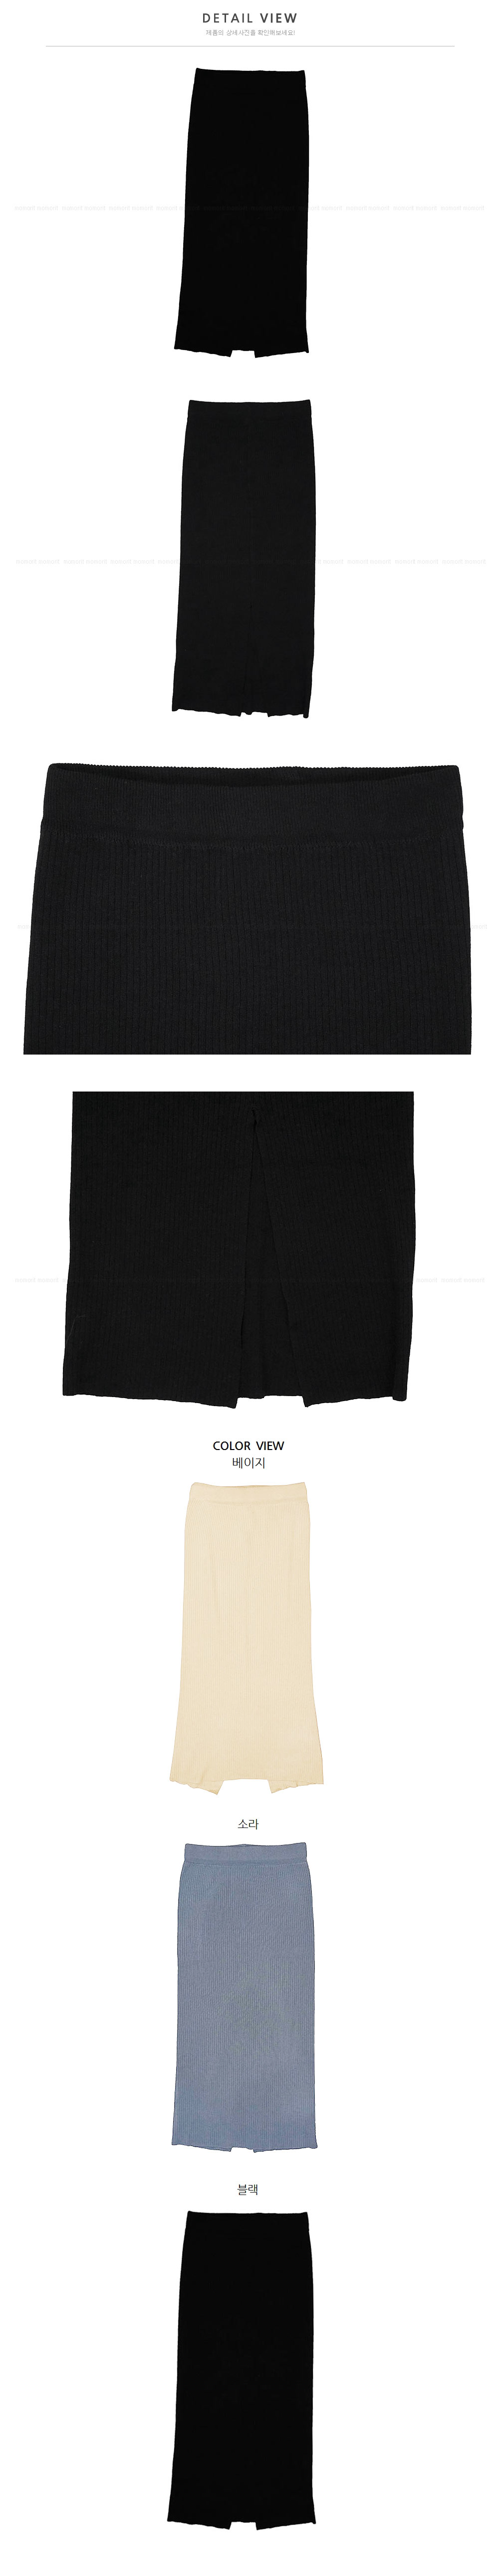 Basic trimming knit skirt 3 color